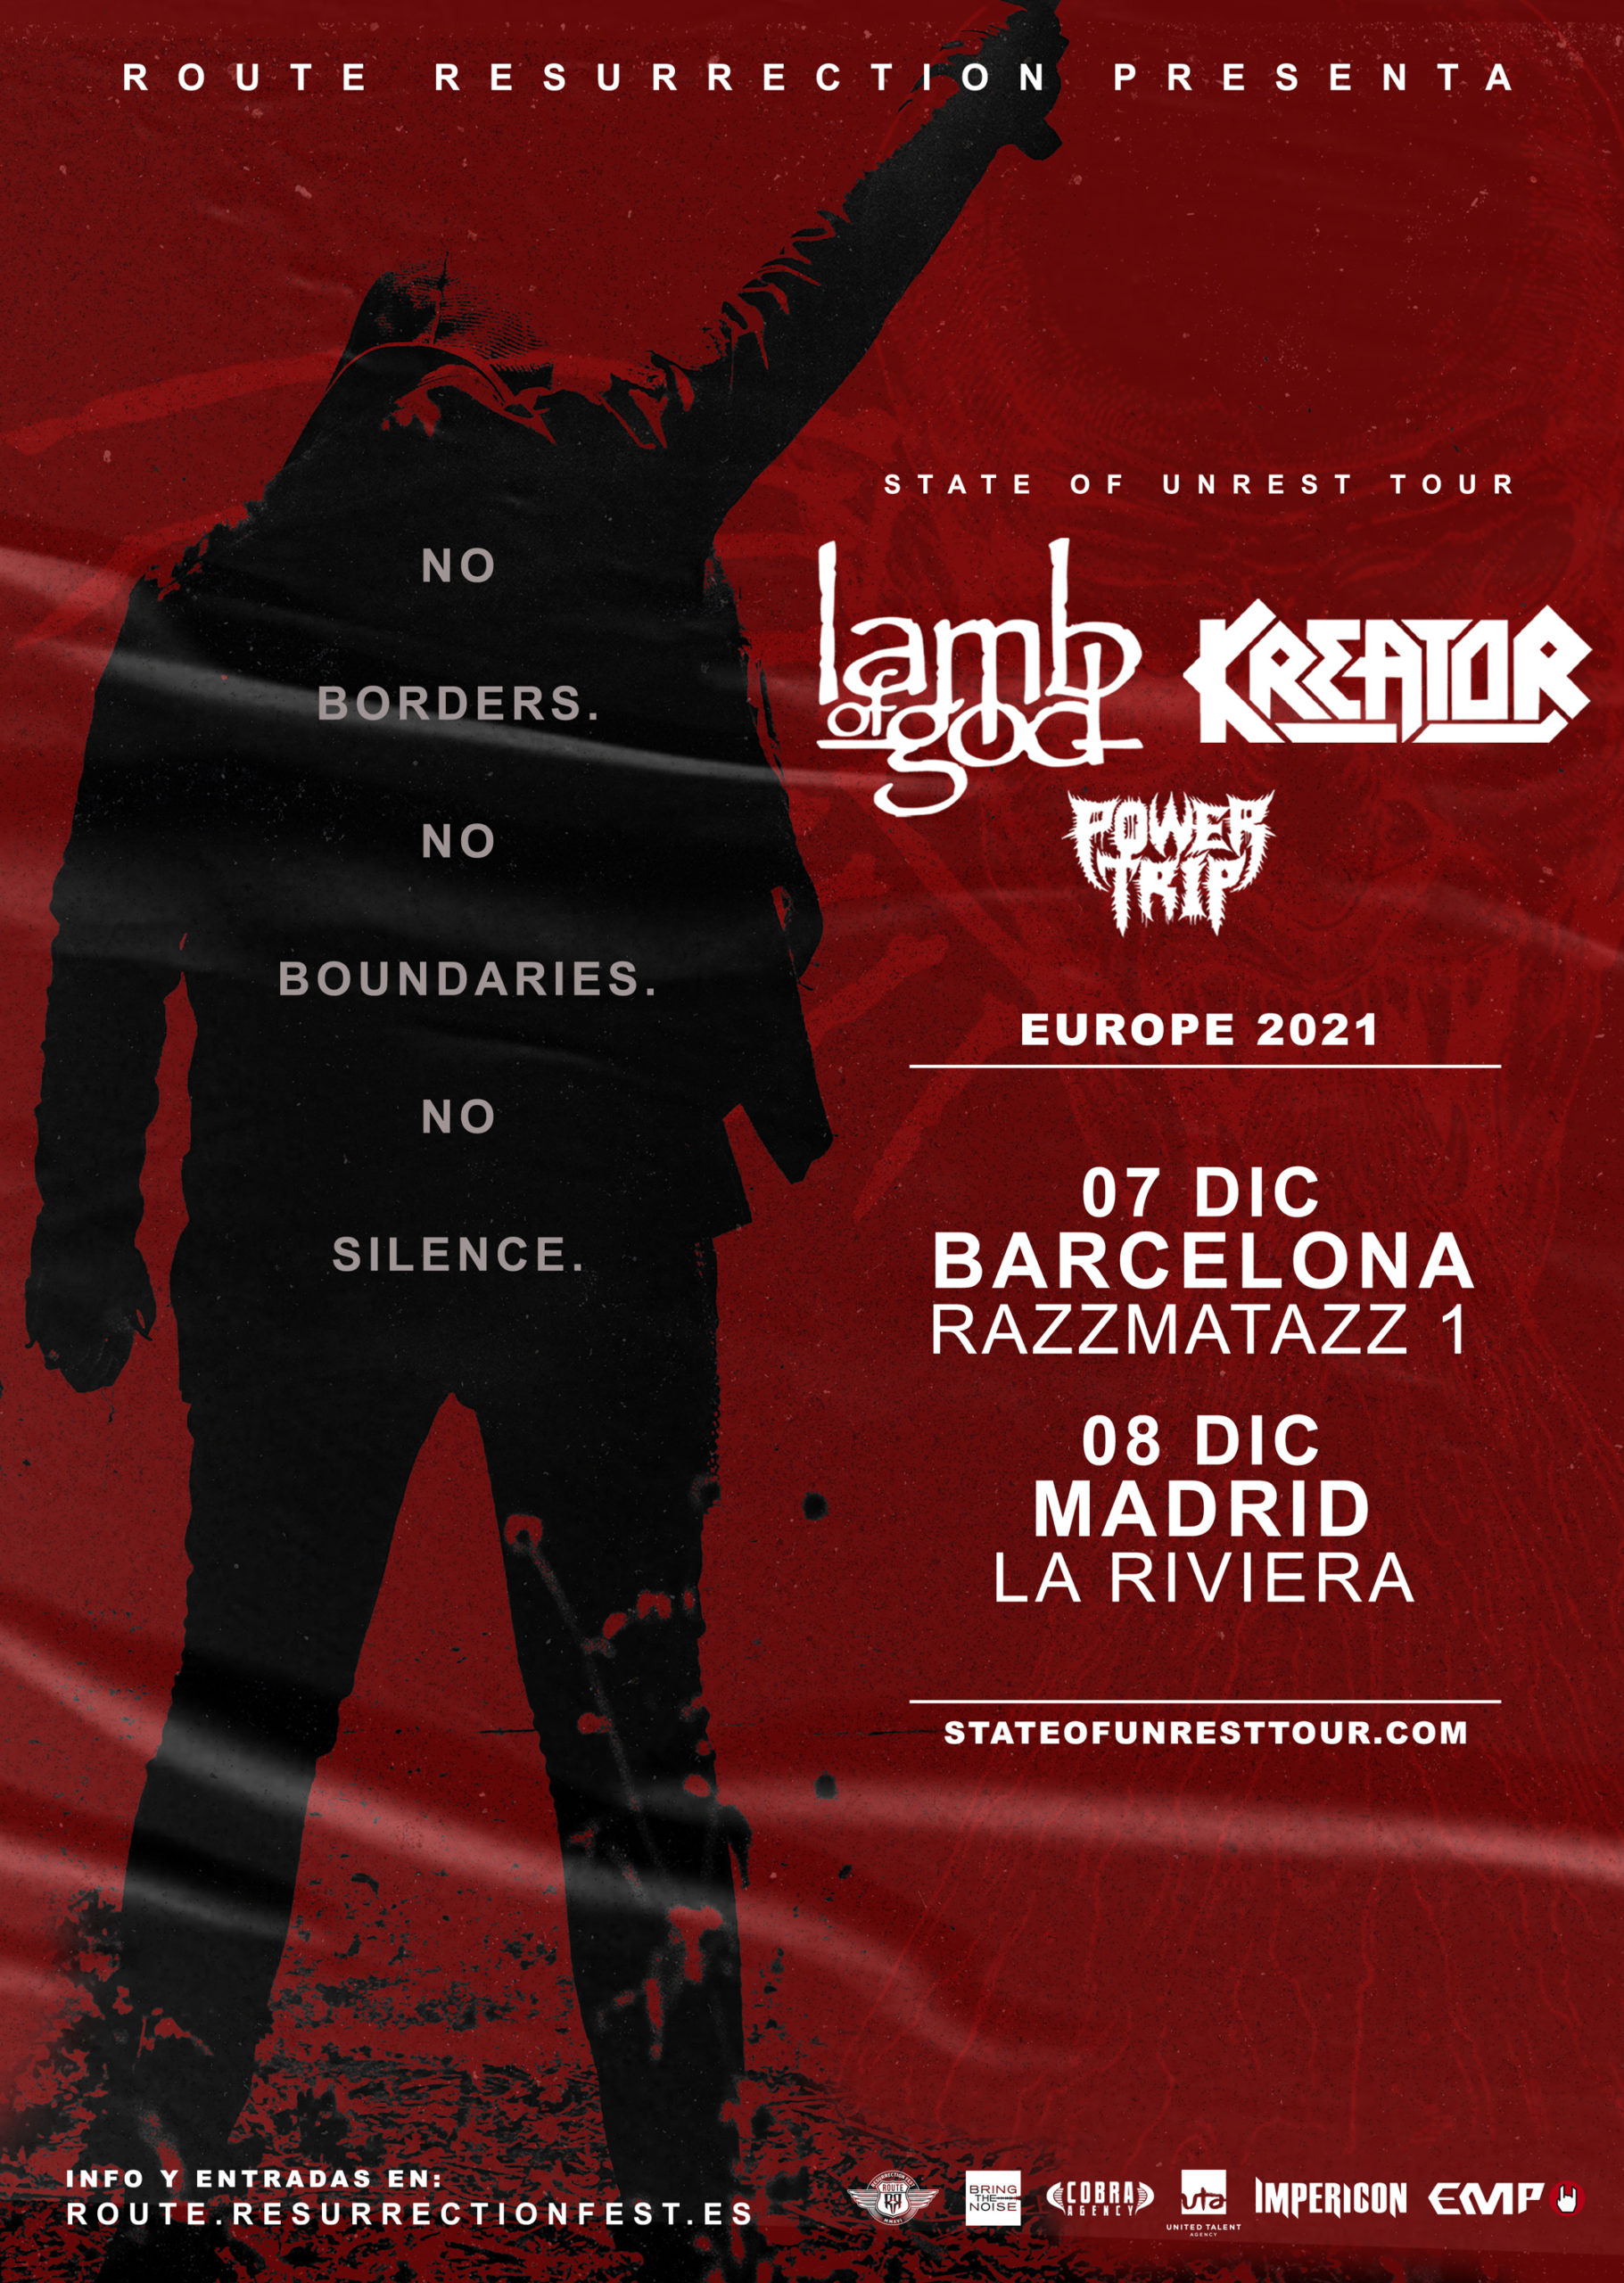 Route Resurrection 2021: Lamb of God y Kreator (Madrid)